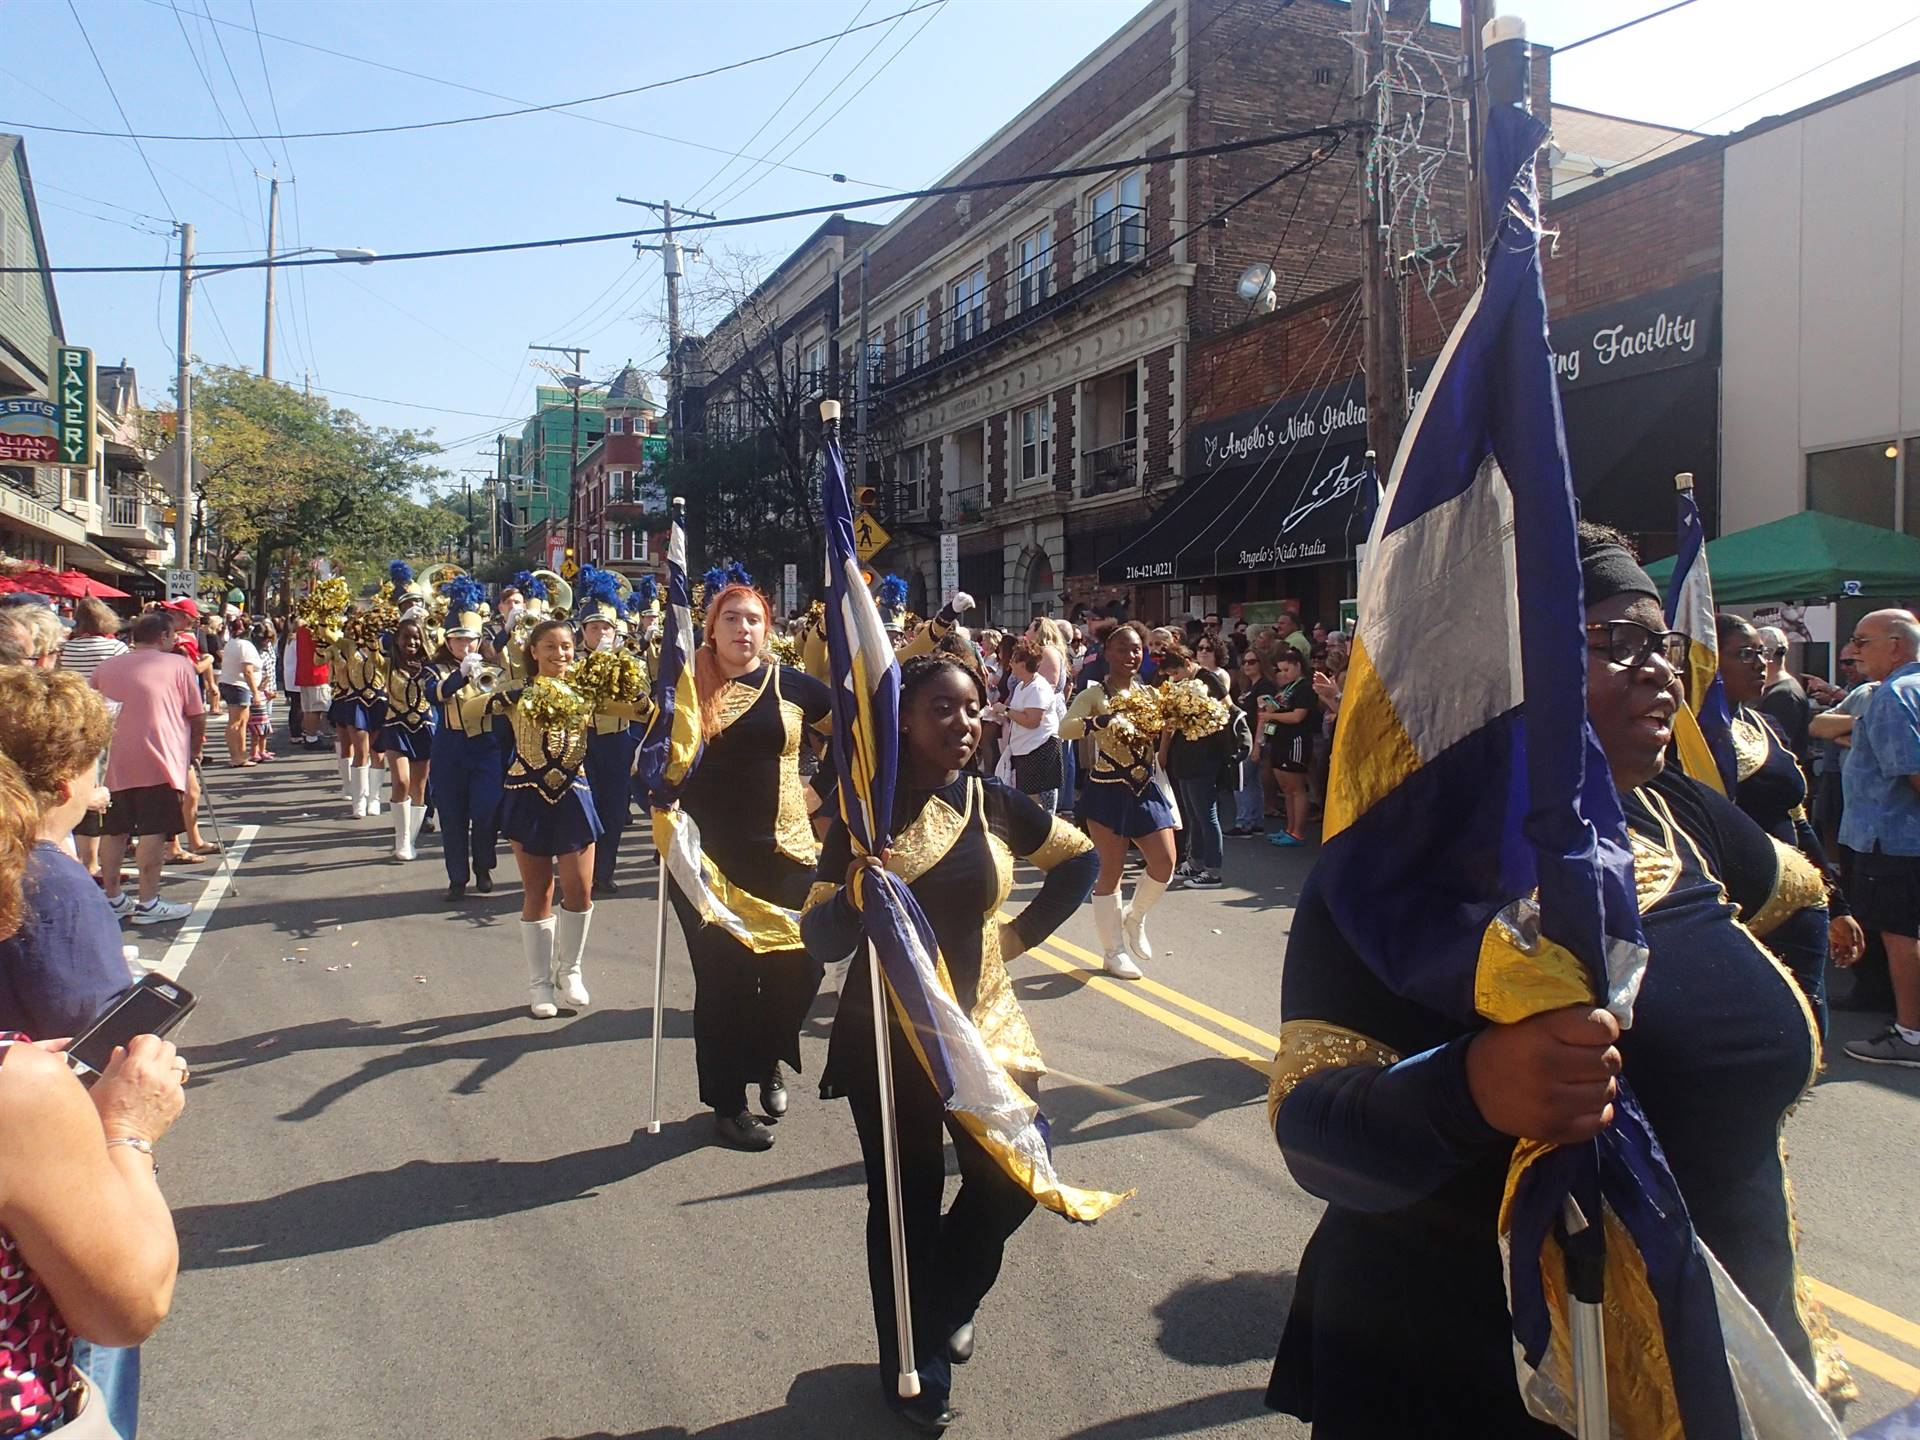 Columbus Day Parade 2018